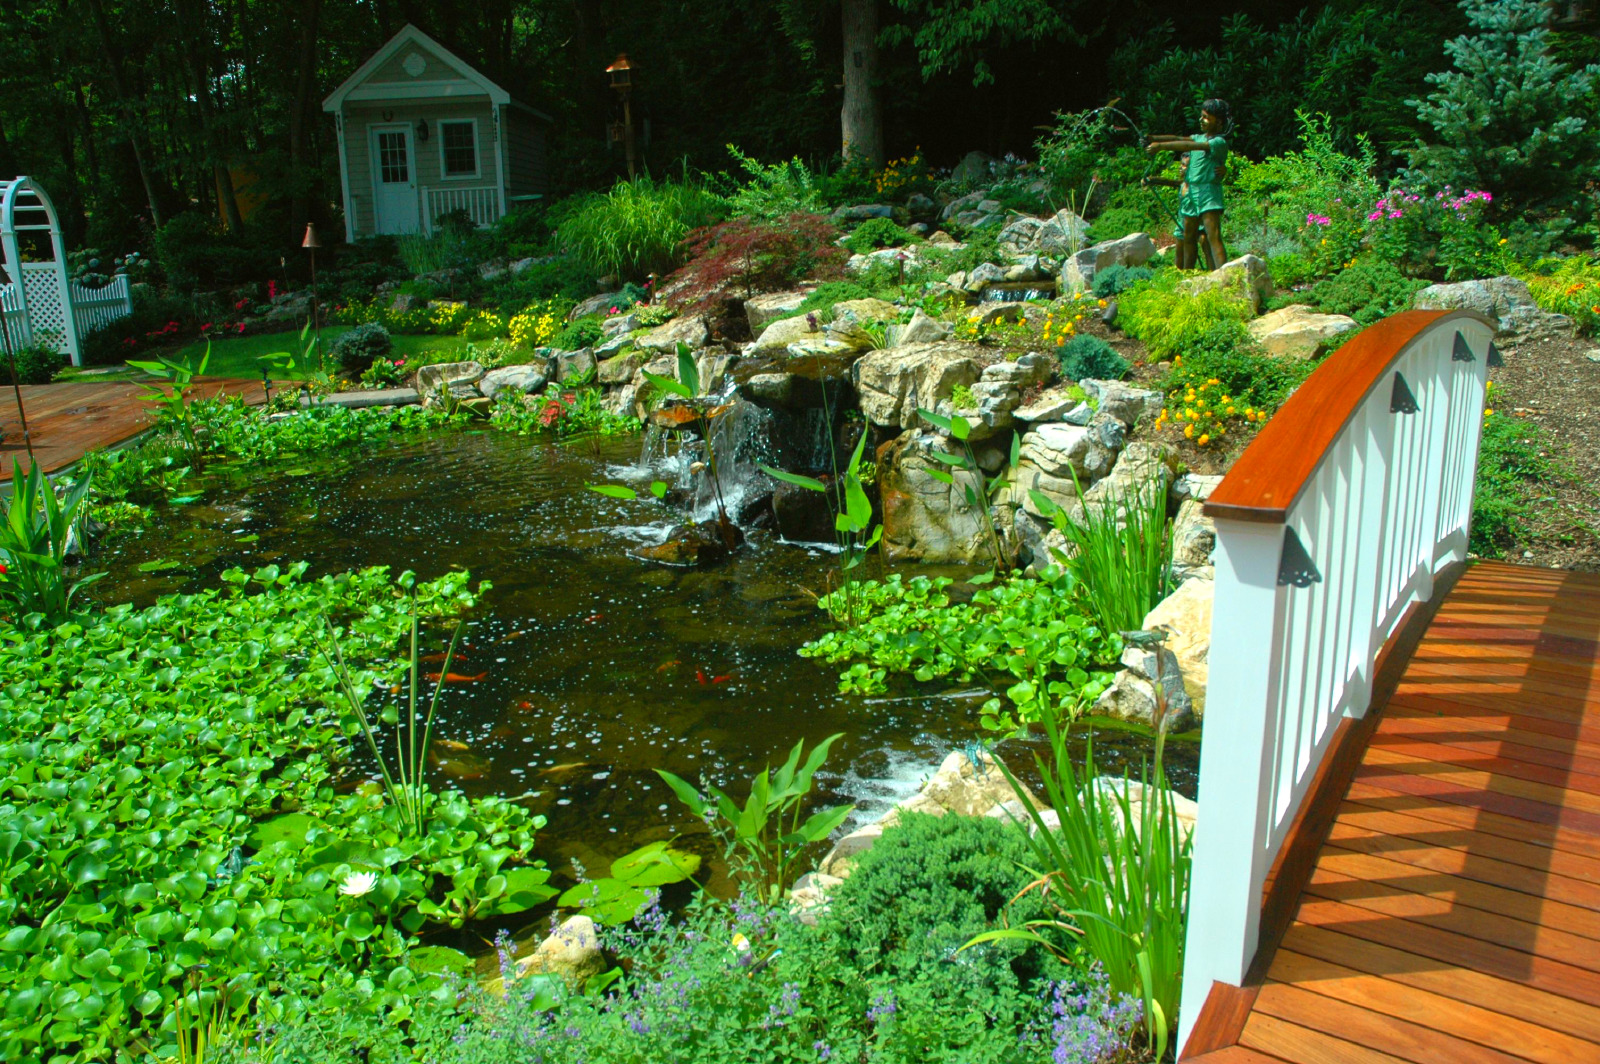 Aquatic Plants for Ponds: